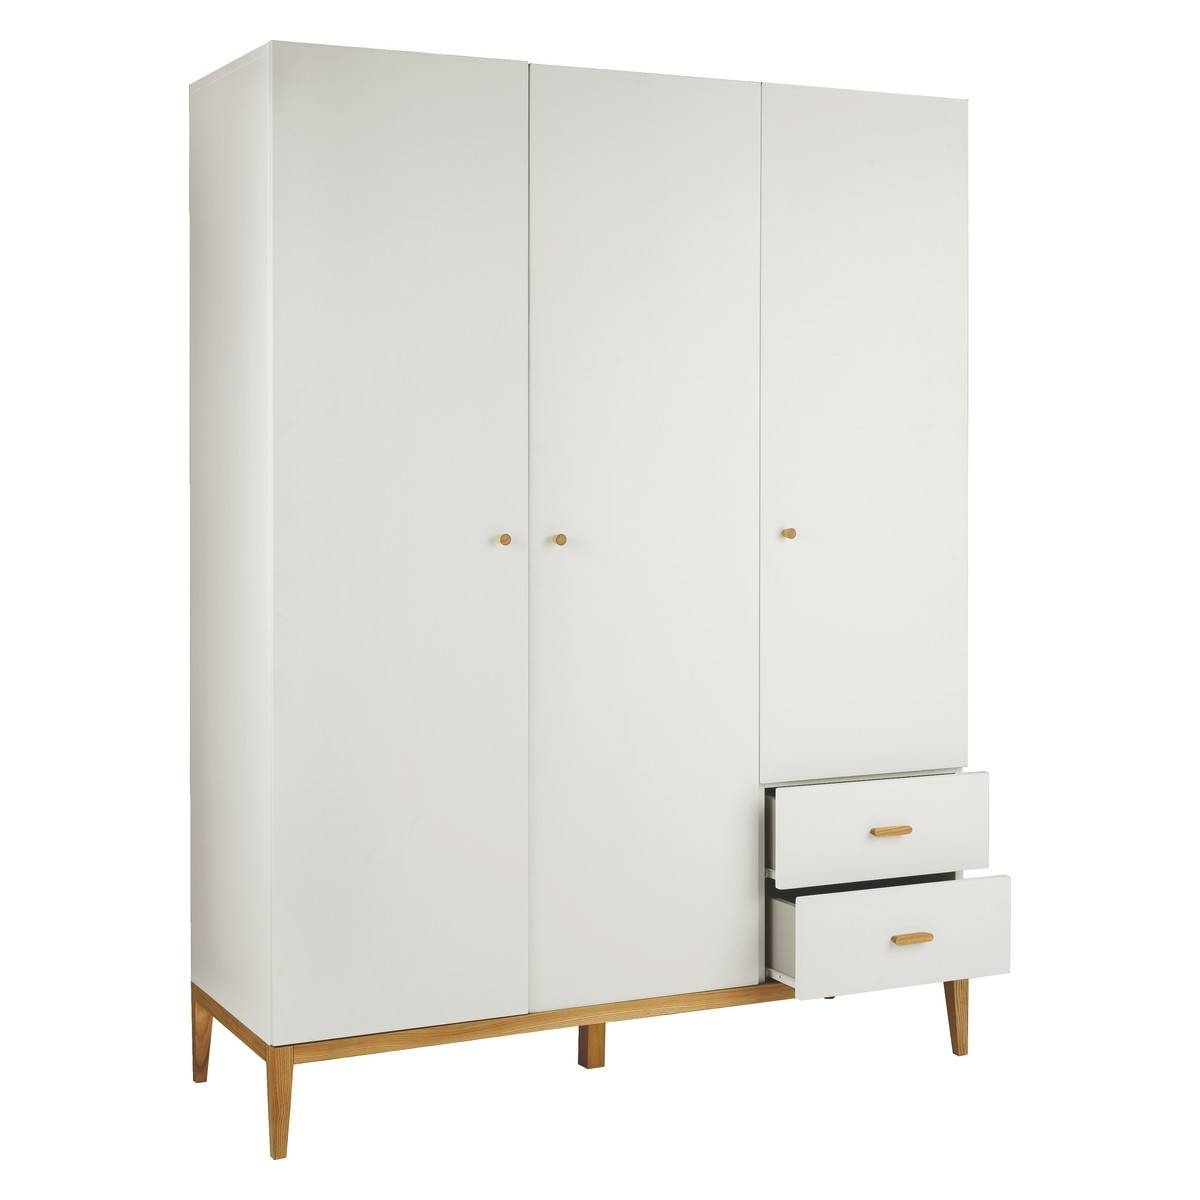 Tatsuma White And Ash 3 Door Wardrobe | Buy Now At Habitat Uk pertaining to 3 Door White Wardrobes (Image 27 of 30)